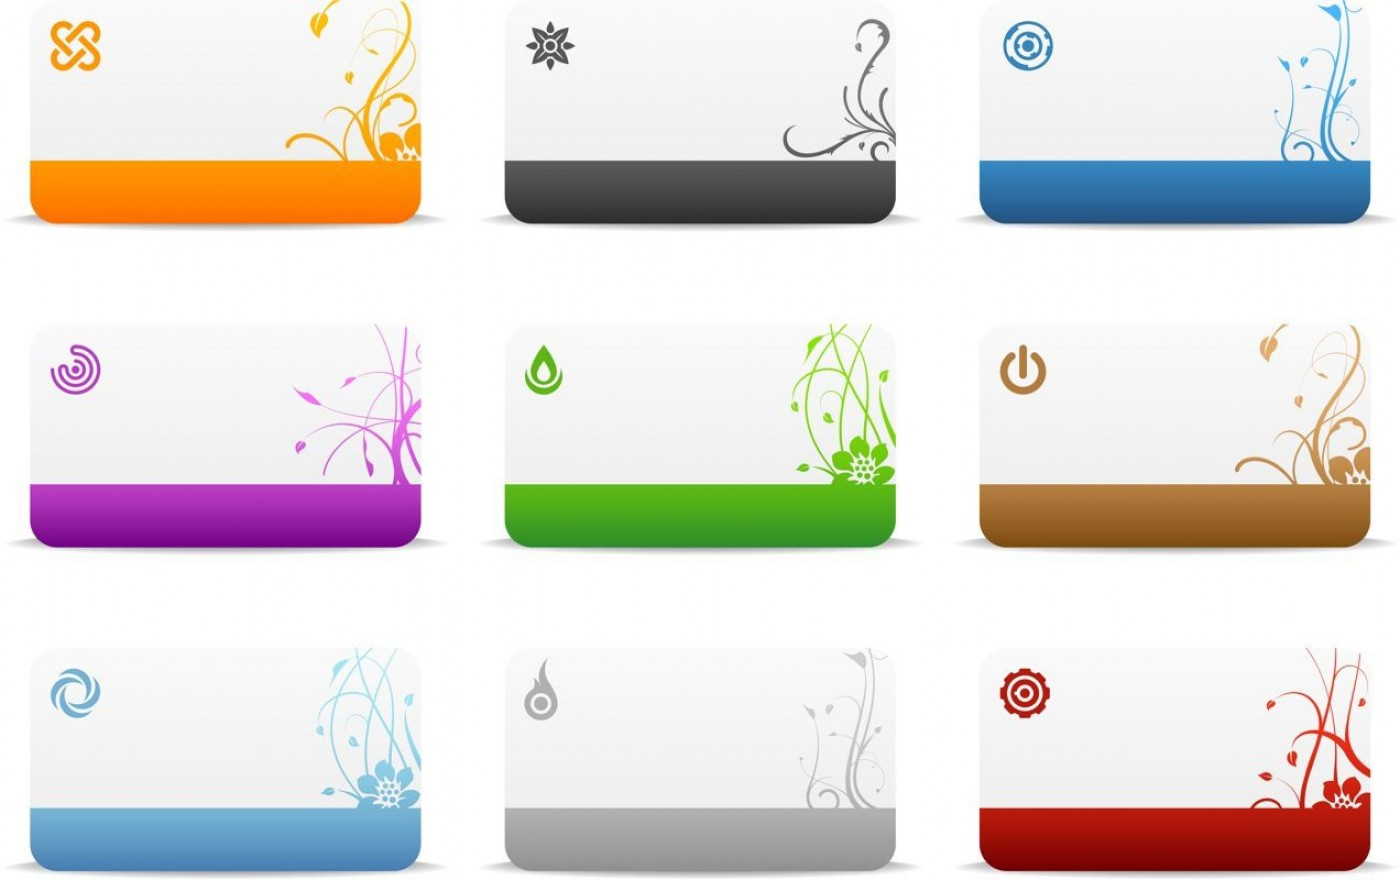 009 Exceptional Blank Busines Card Template Photoshop Example  Free Download Psd1400